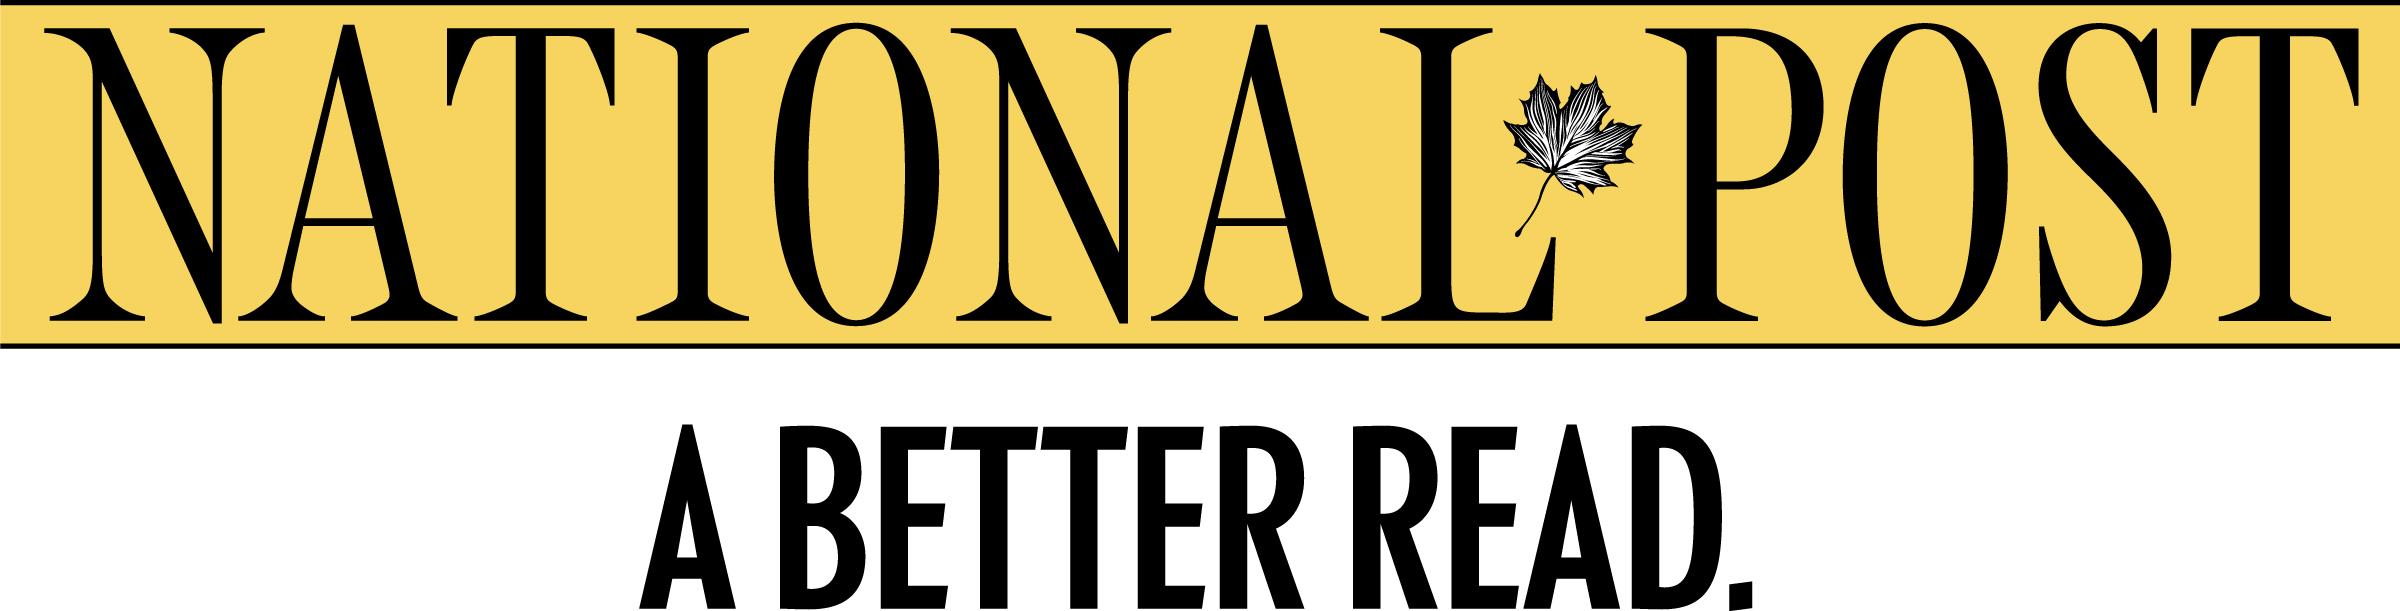 National Post - Media Sponsor